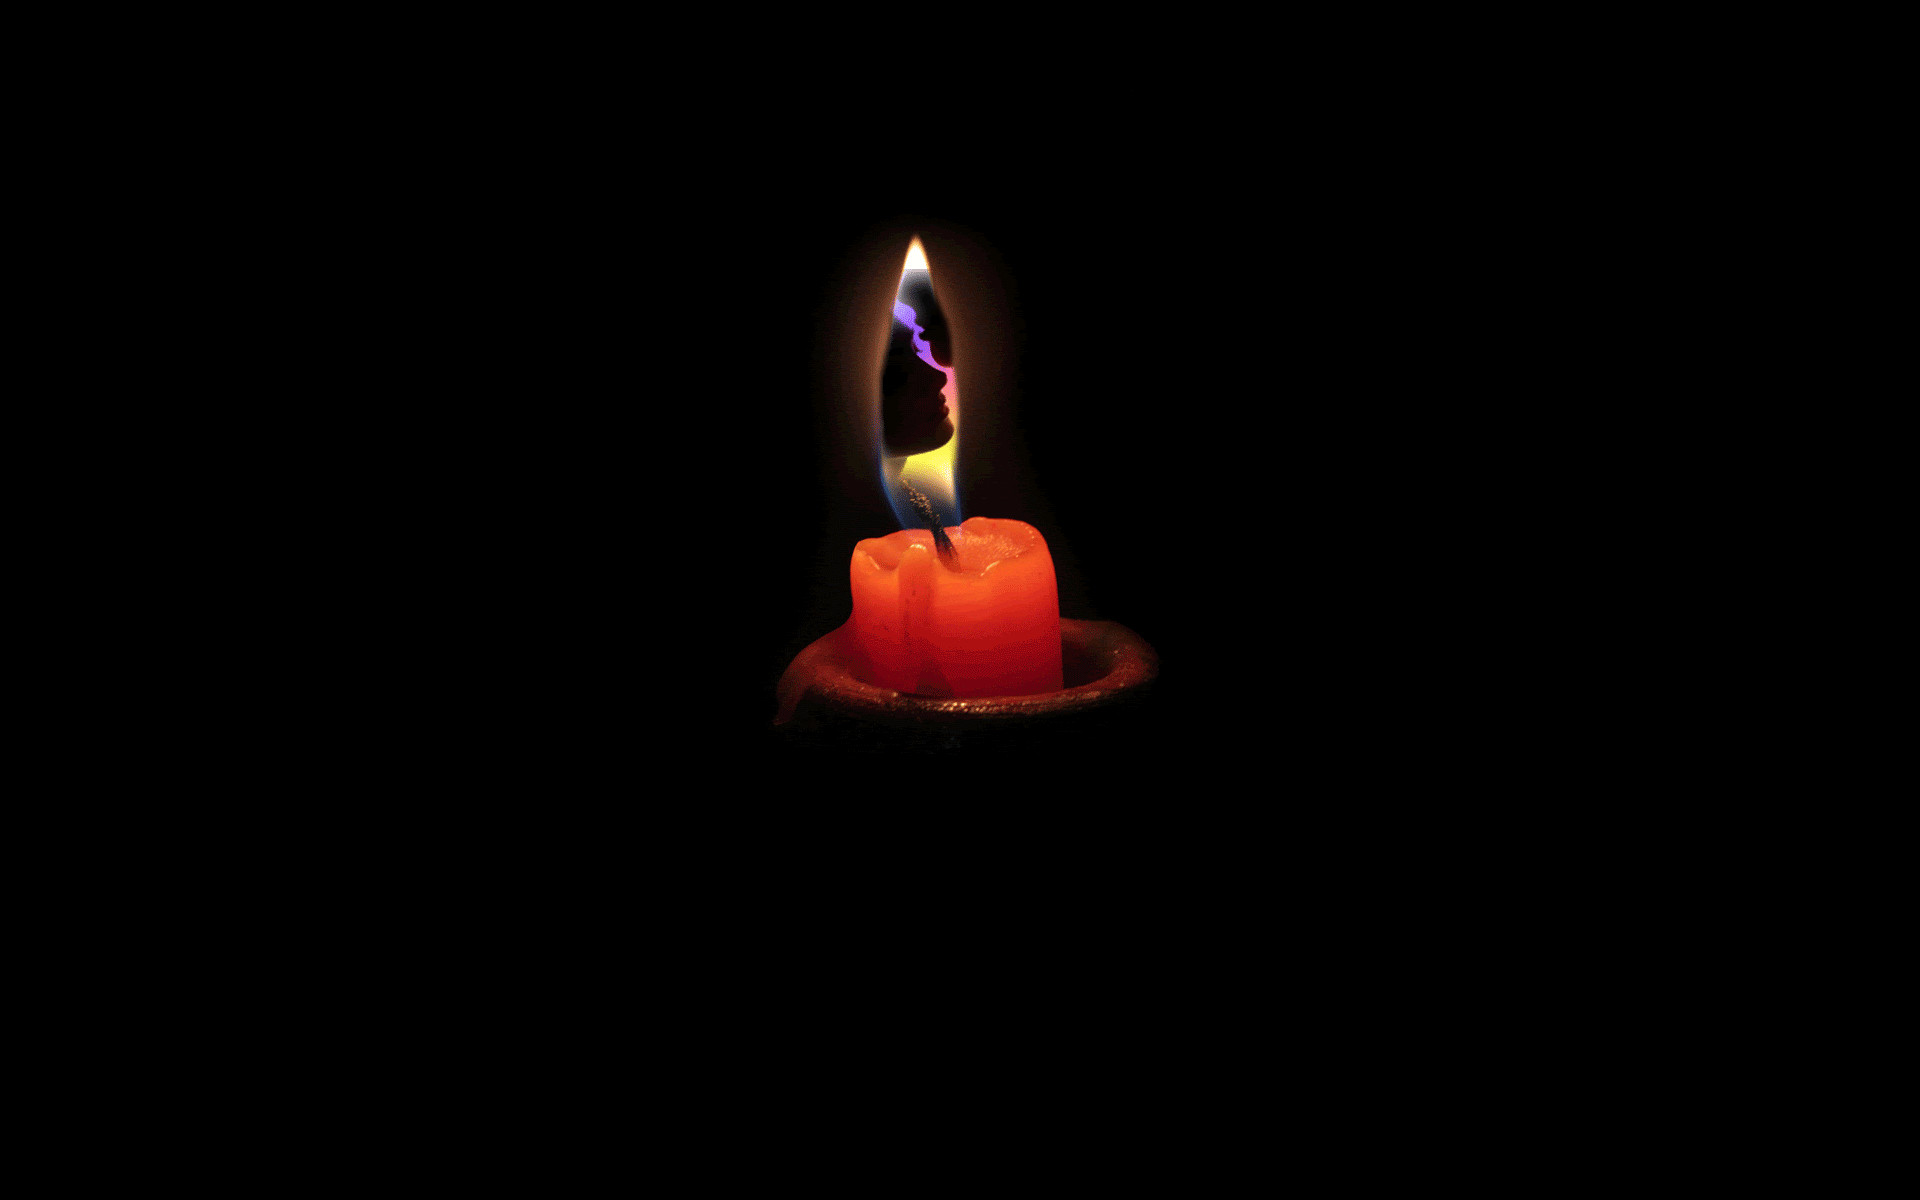 1920x1200 Candle Light Animated Black Wallpaper